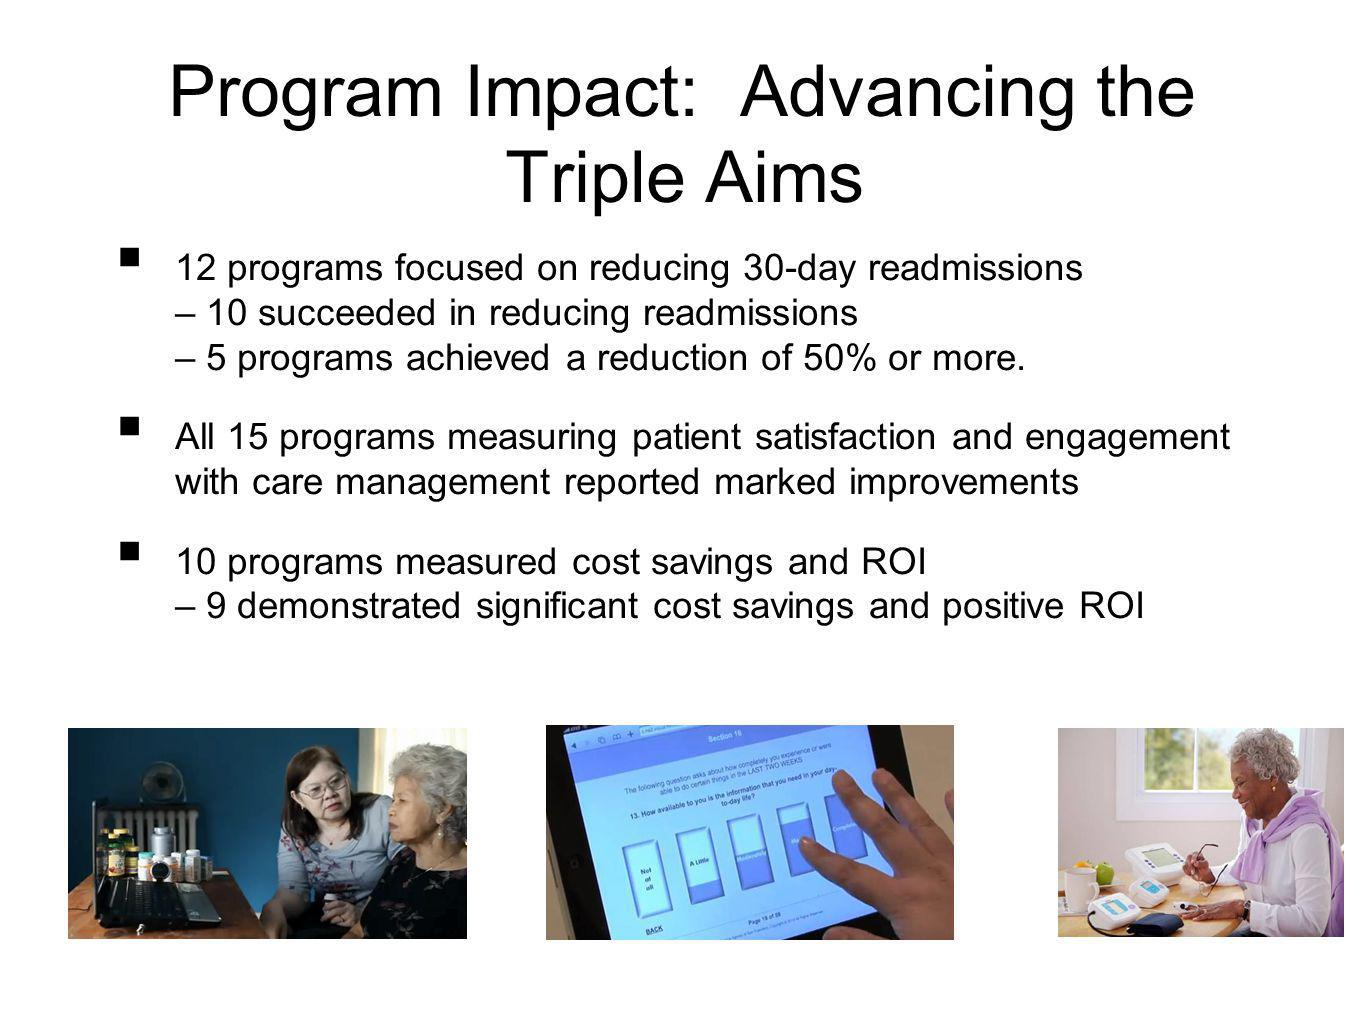 Program Impact: Advancing the Triple Aims 12 programs focused on reducing 30-day readmissions – 10 succeeded in reducing readmissions – 5 programs achieved a reduction of 50% or more.